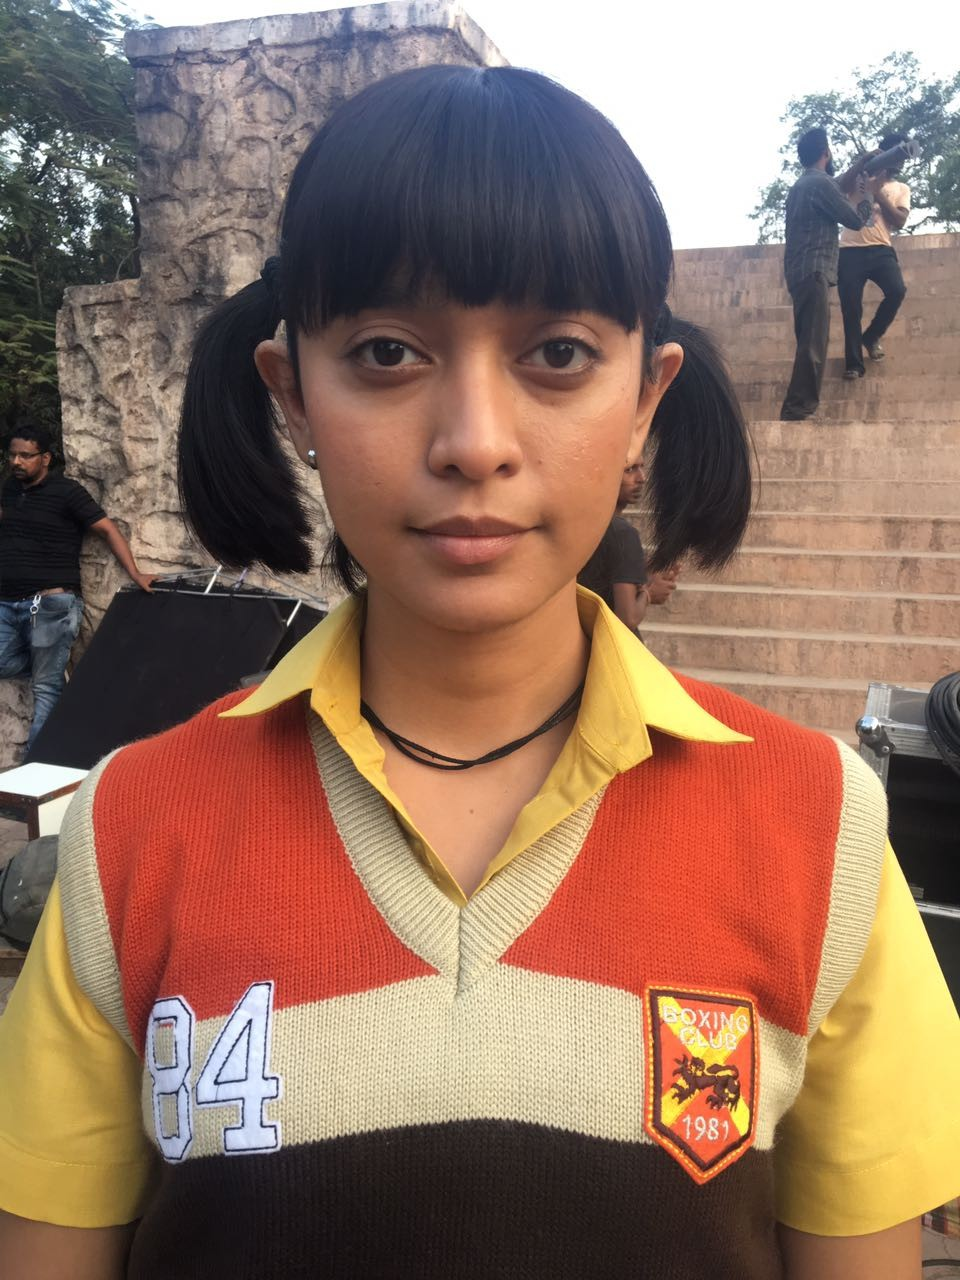 Sayani Gupta Bonds with Ranbir and Katrina on The Sets of Jagga Jasoos